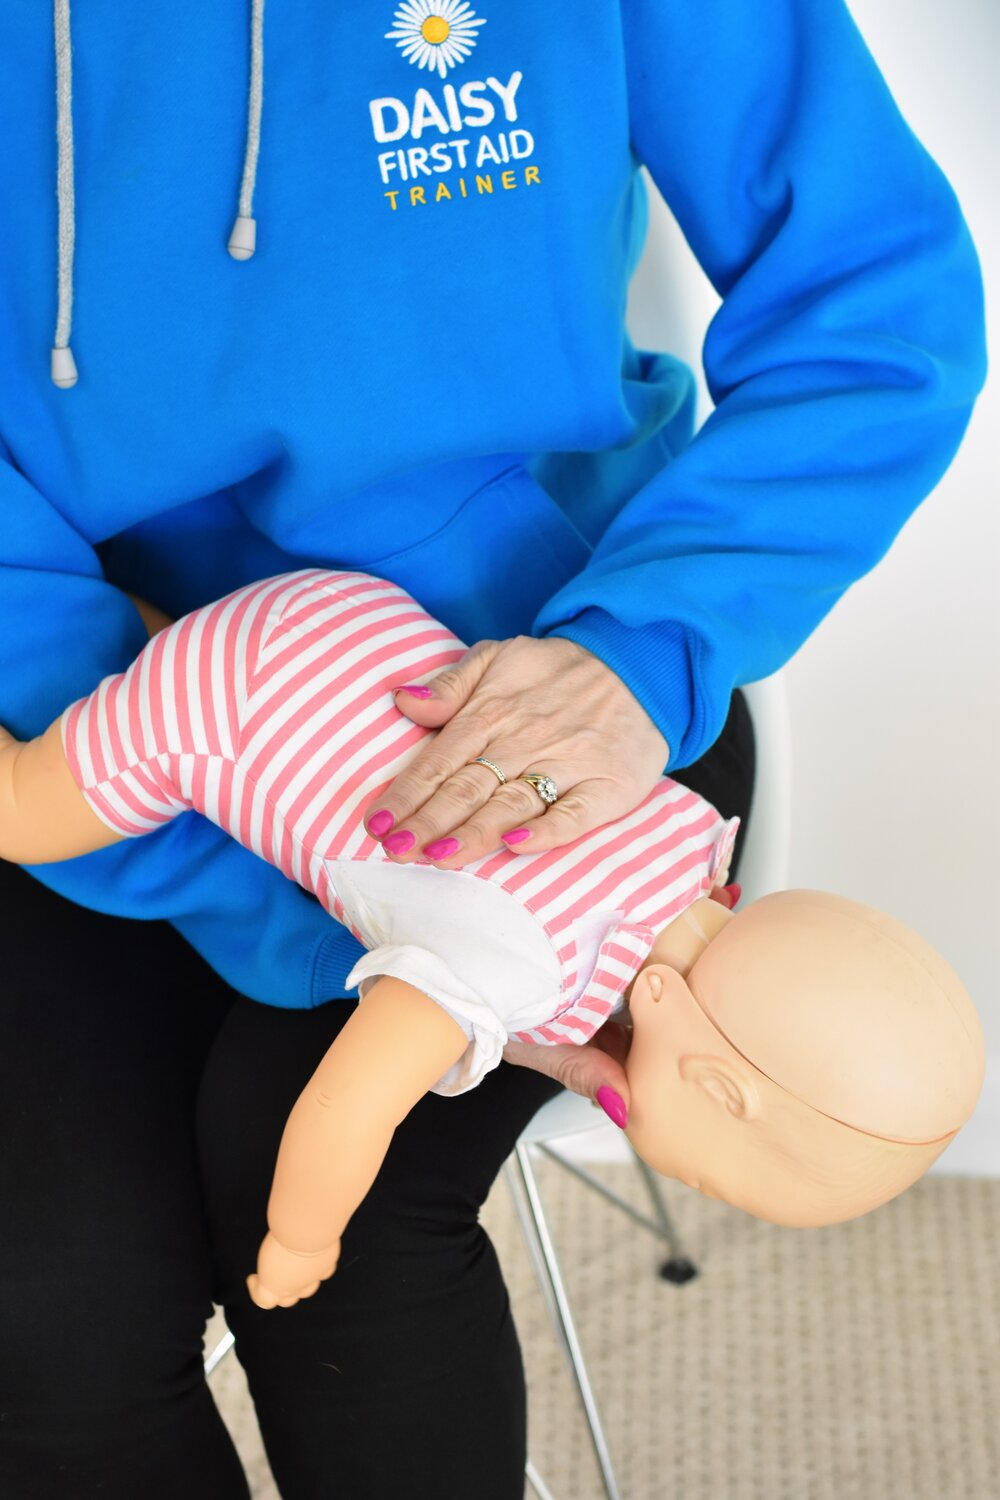 What should you do if the worst happens and your baby chokes? by Sarah Almond Bushell - the Children's Nutritionist